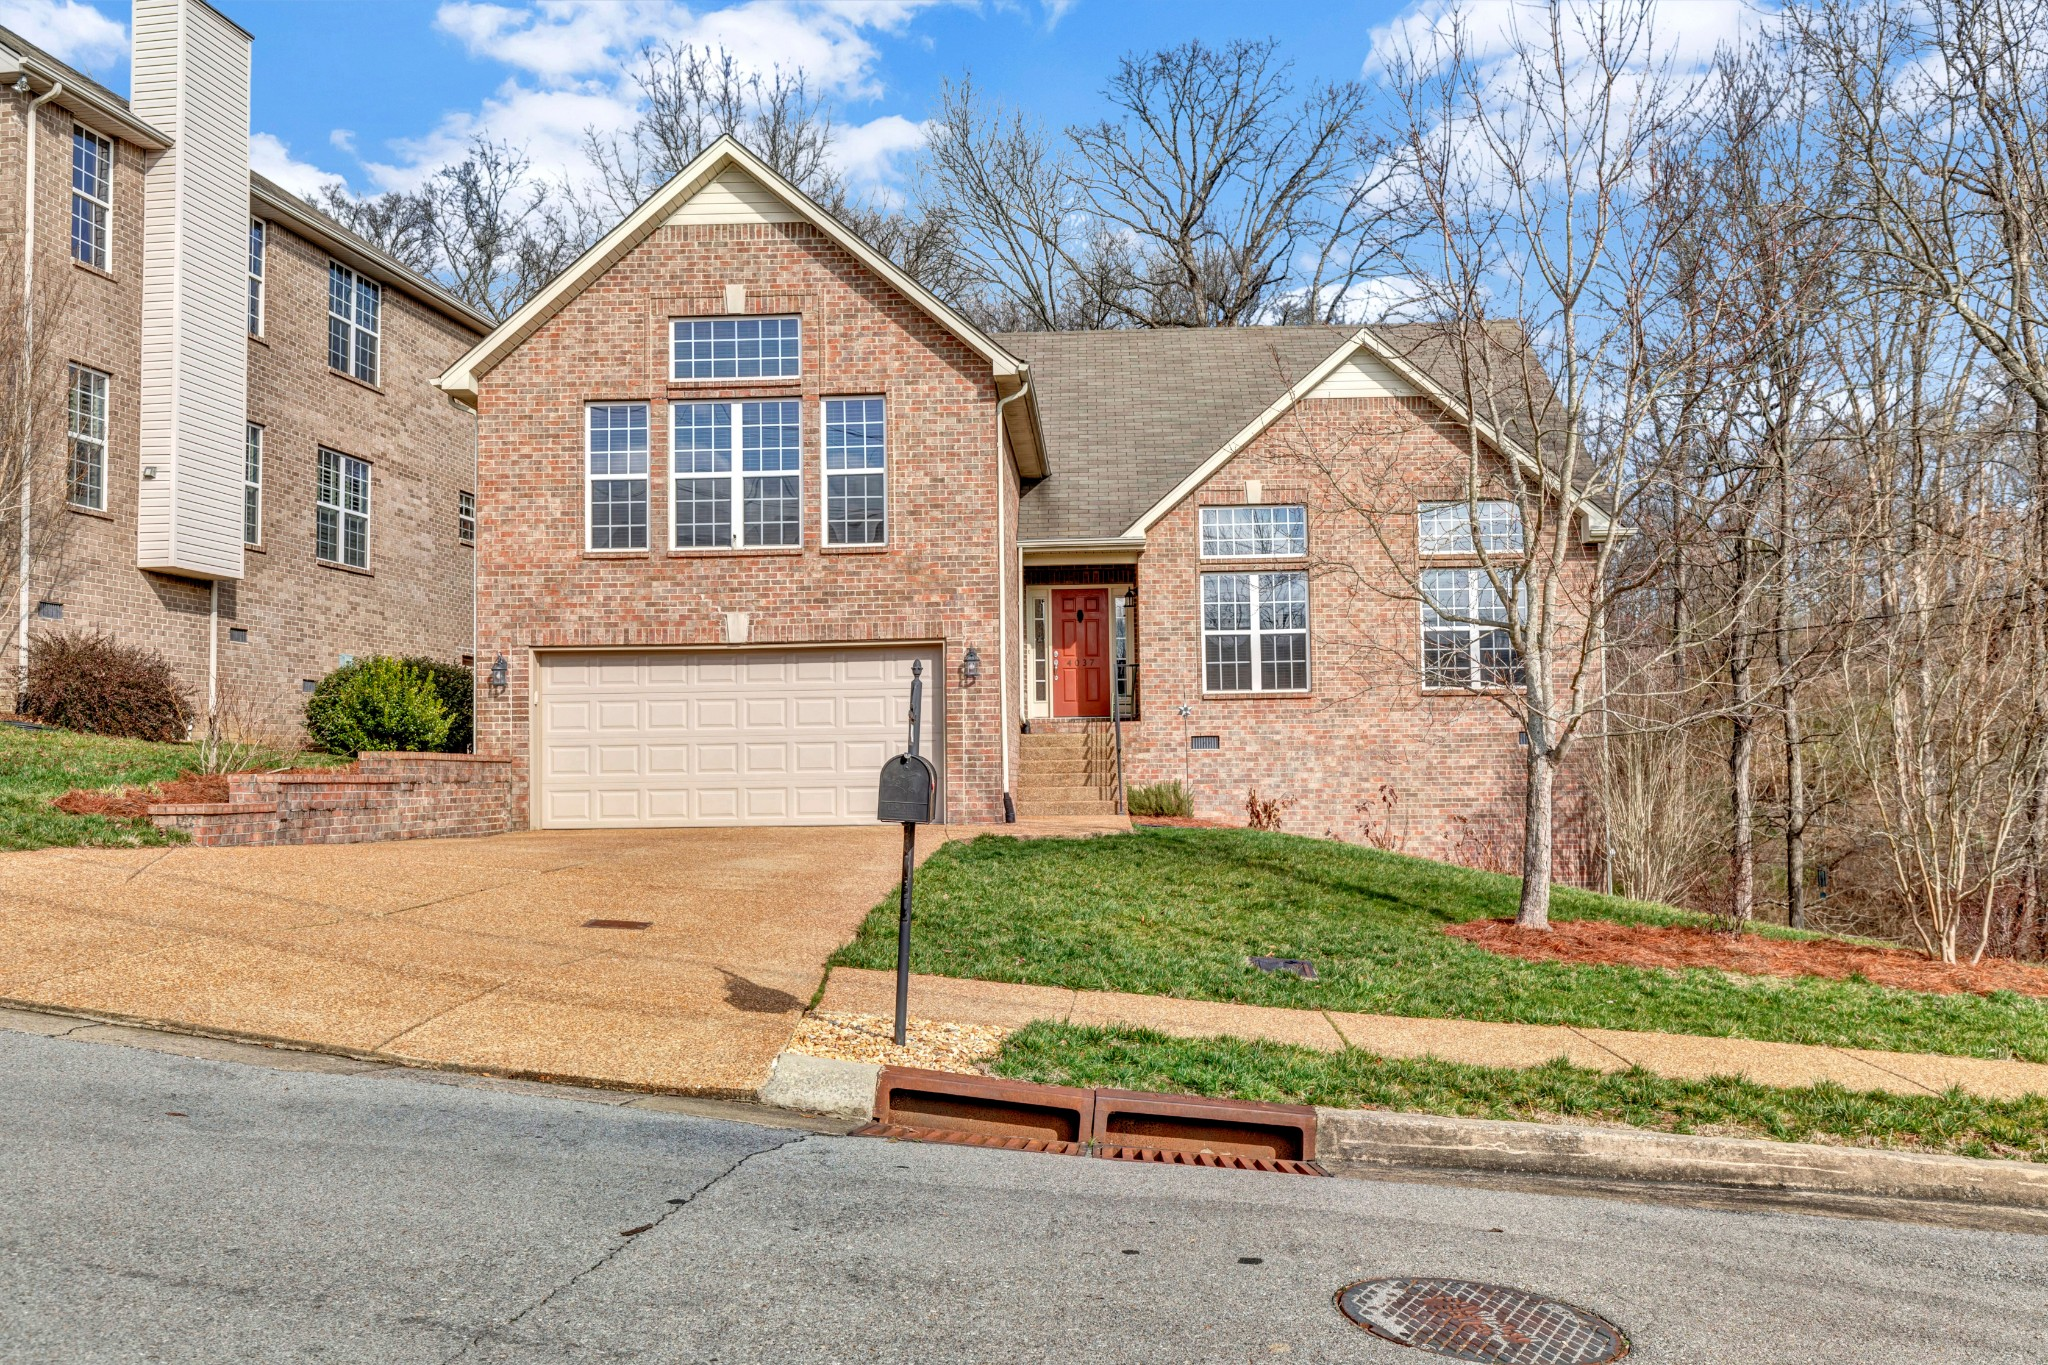 4037 Sweetberry Dr, Nashville, TN 37211 - Nashville, TN real estate listing